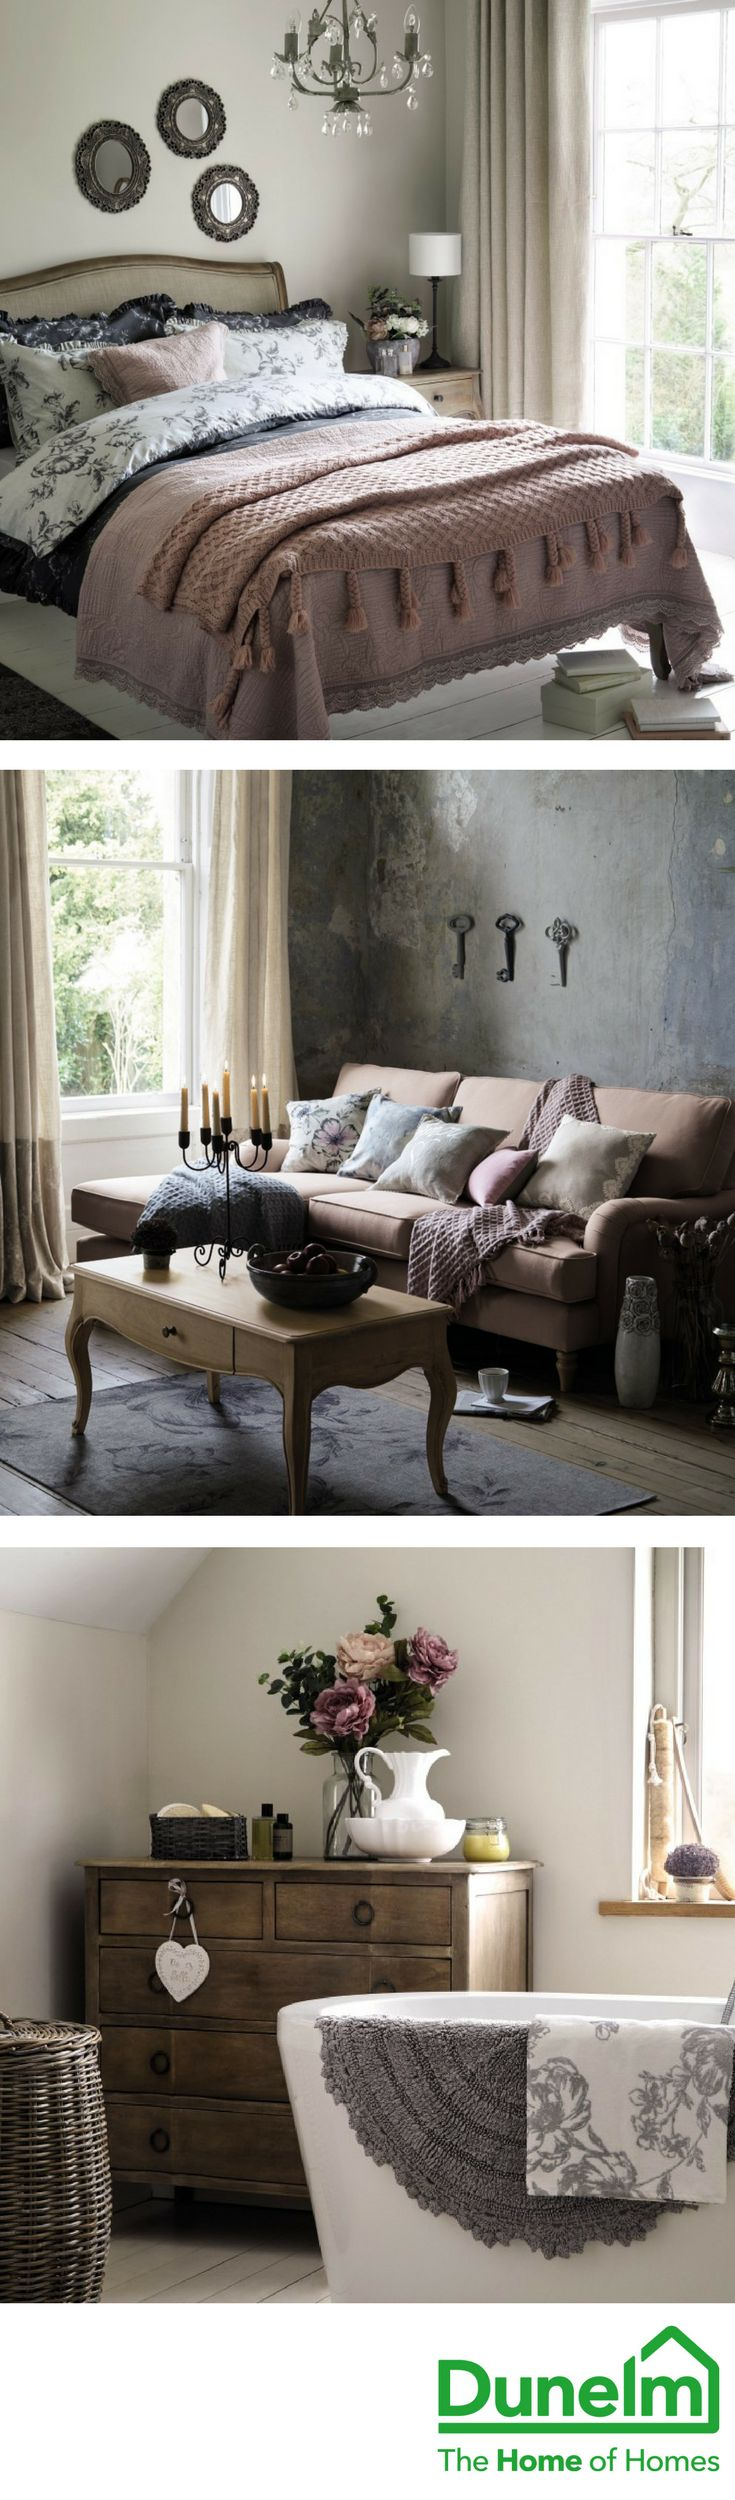 This season's Maison Francaise trend combines classic shapes with French antique style, modernised with soft pastel highlights. Vintage fans will love this sophisticated collection that's brought up to date with the bold introduction of a contrasting dark charcoal and chalk white palette. Centring around the trend for 'pure' design in furniture, classic shapes are reimagined with contemporary colours and finishes